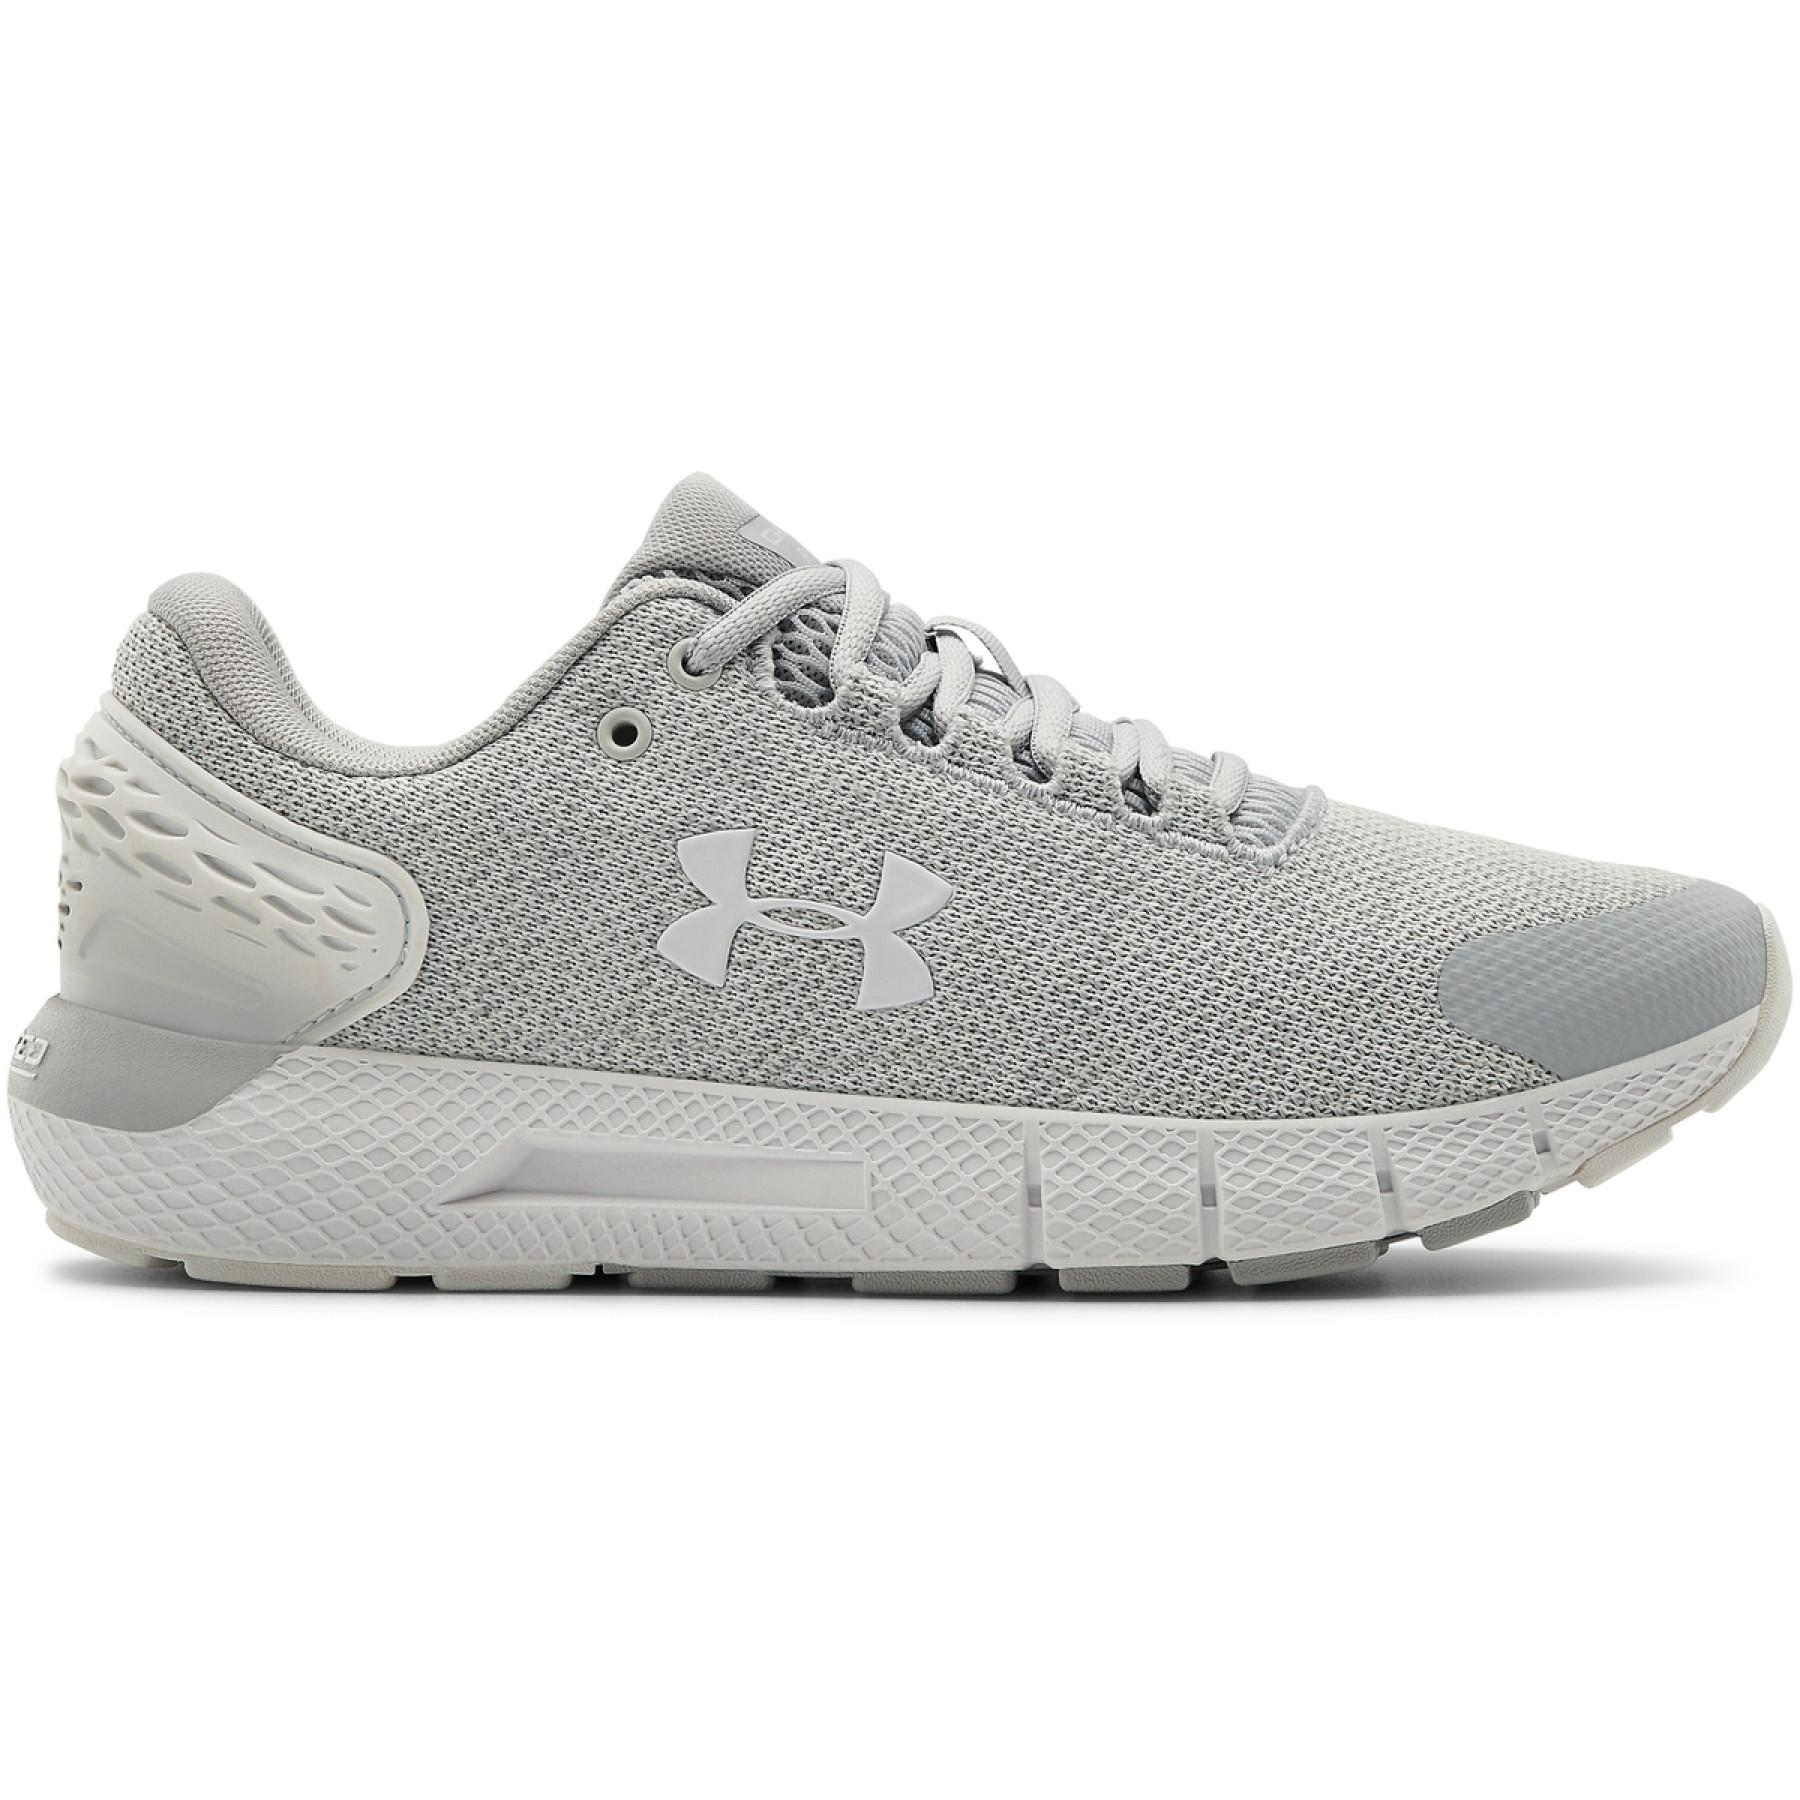 Women's running shoes Under Armour Charged Rogue 2 Twist